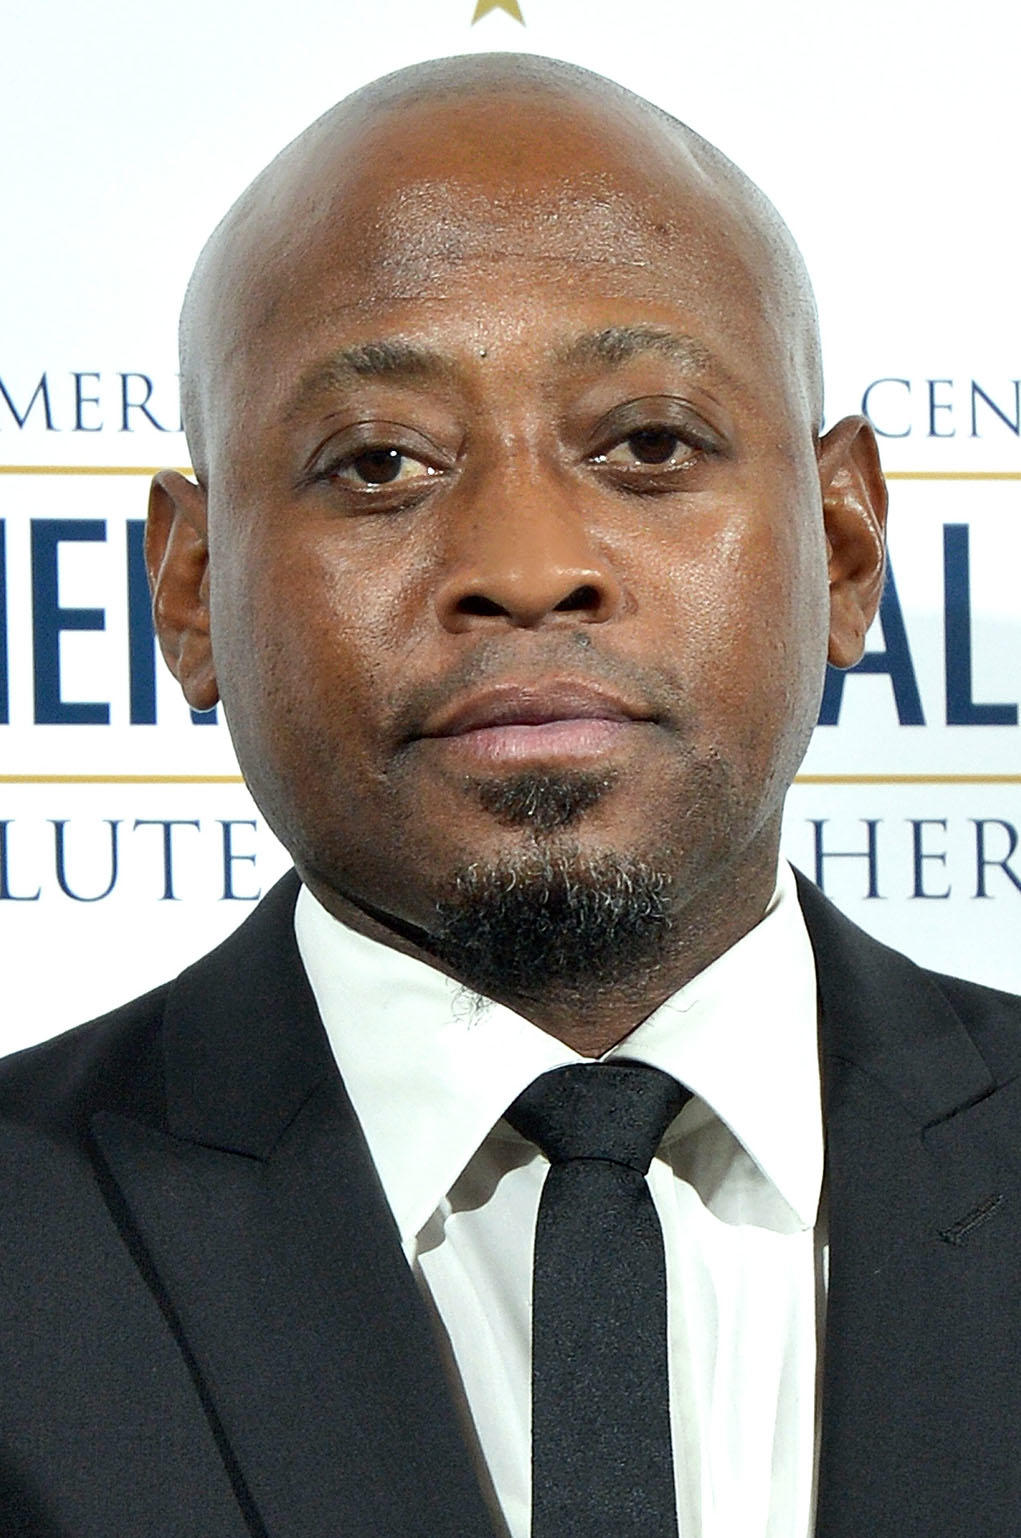 Omar Epps at the American Veterans Center's